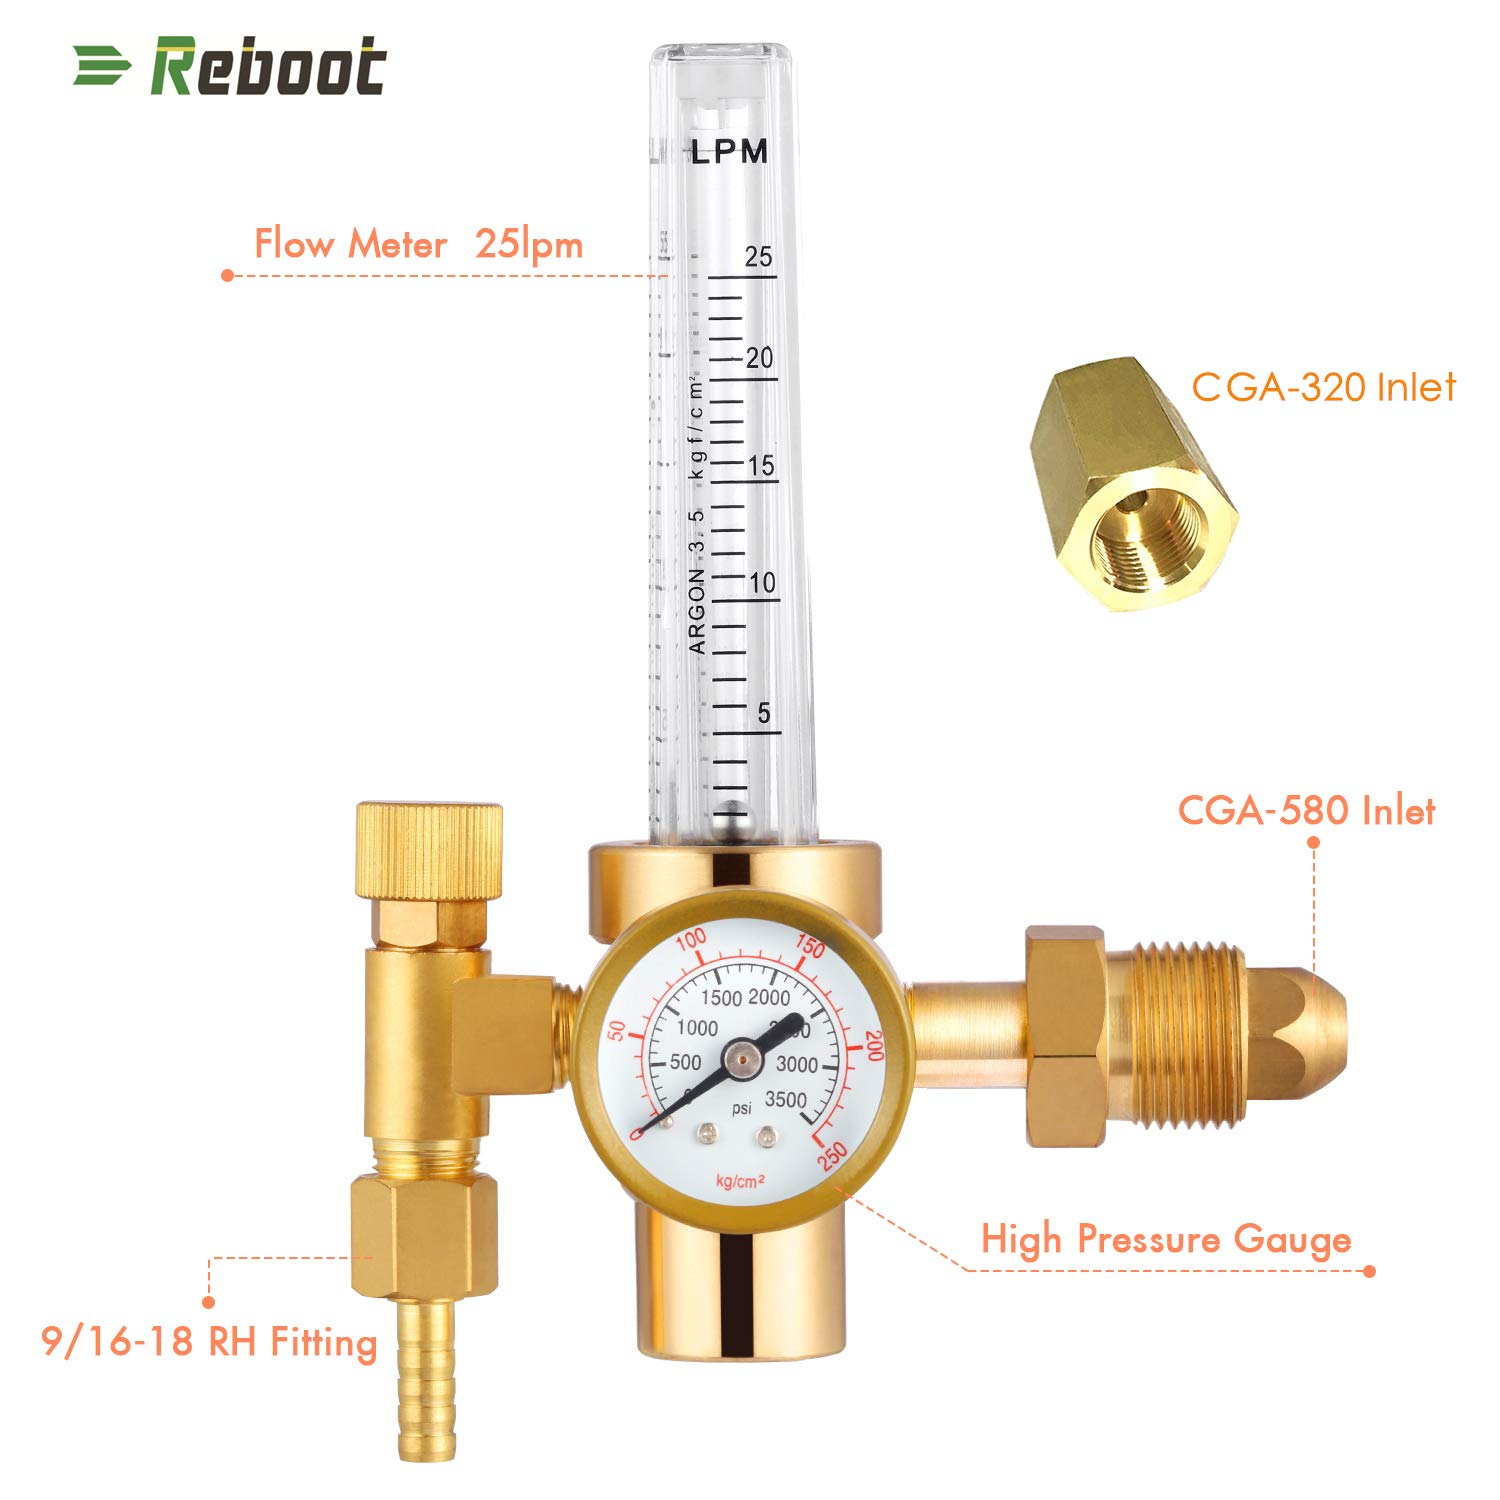 Argon Flowmeter Welding Regulator Gas Values Welding Accessory for Tig Welder Argon Regulator